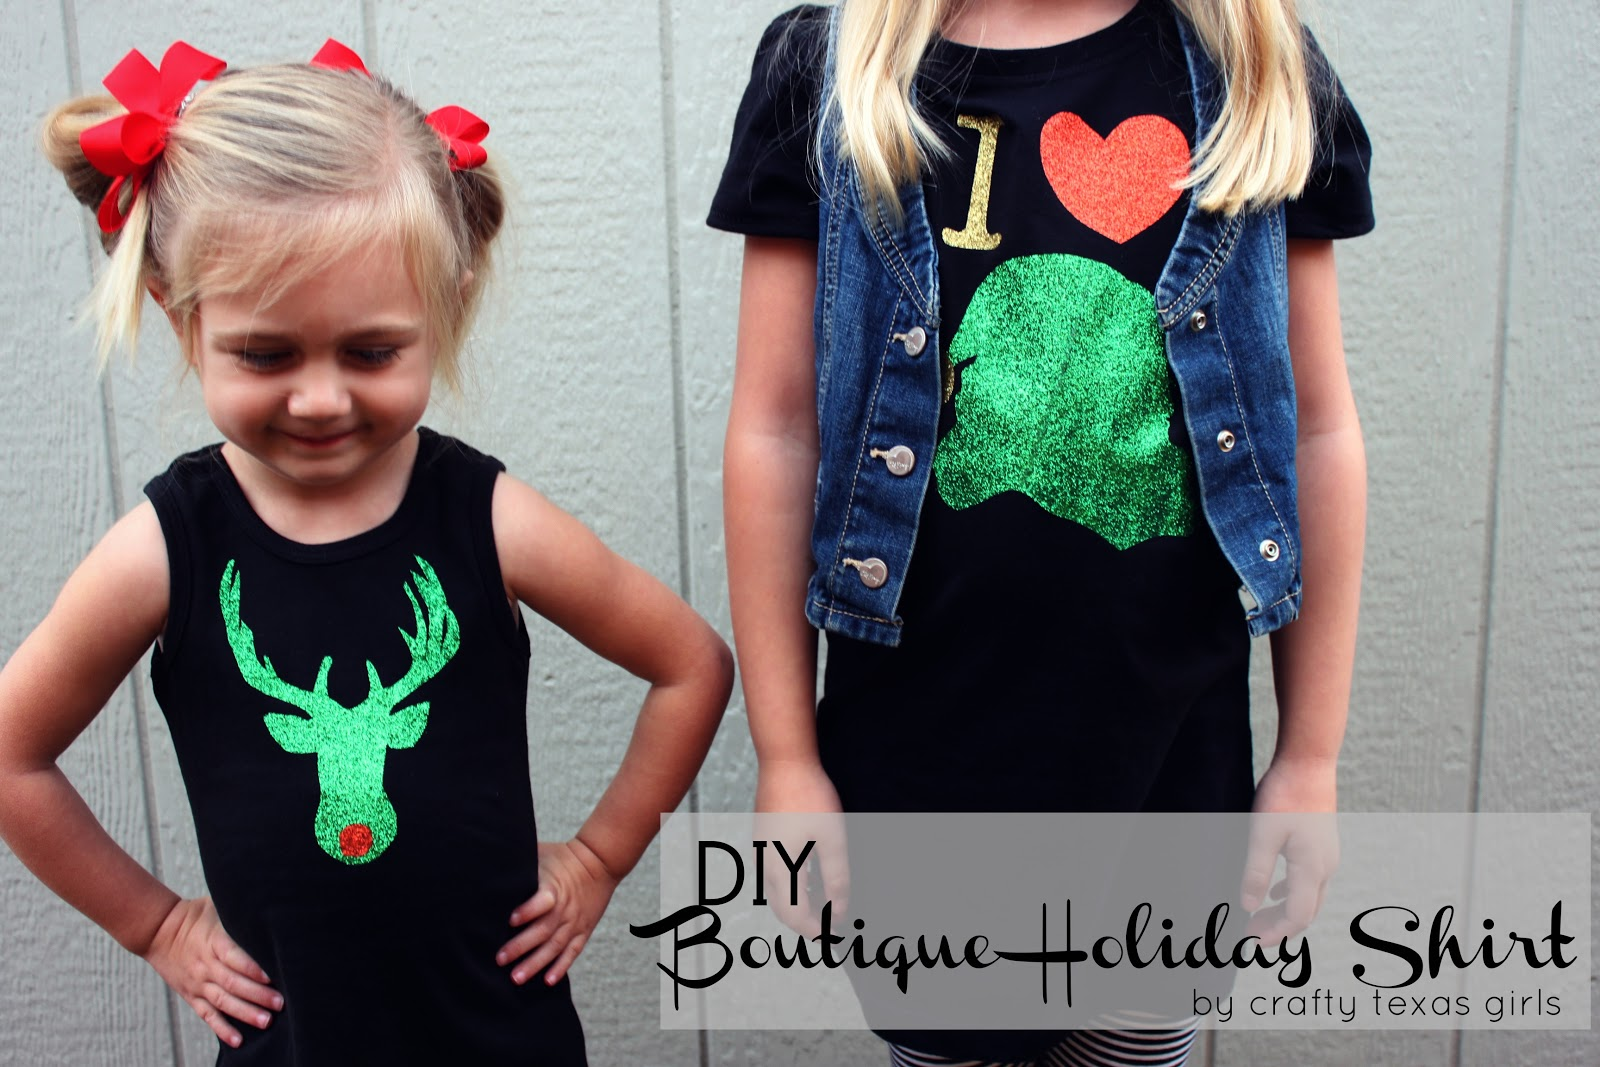 and today i am bringing my project back here to show you how to create an adorable boutique holiday shirt just in time for christmas